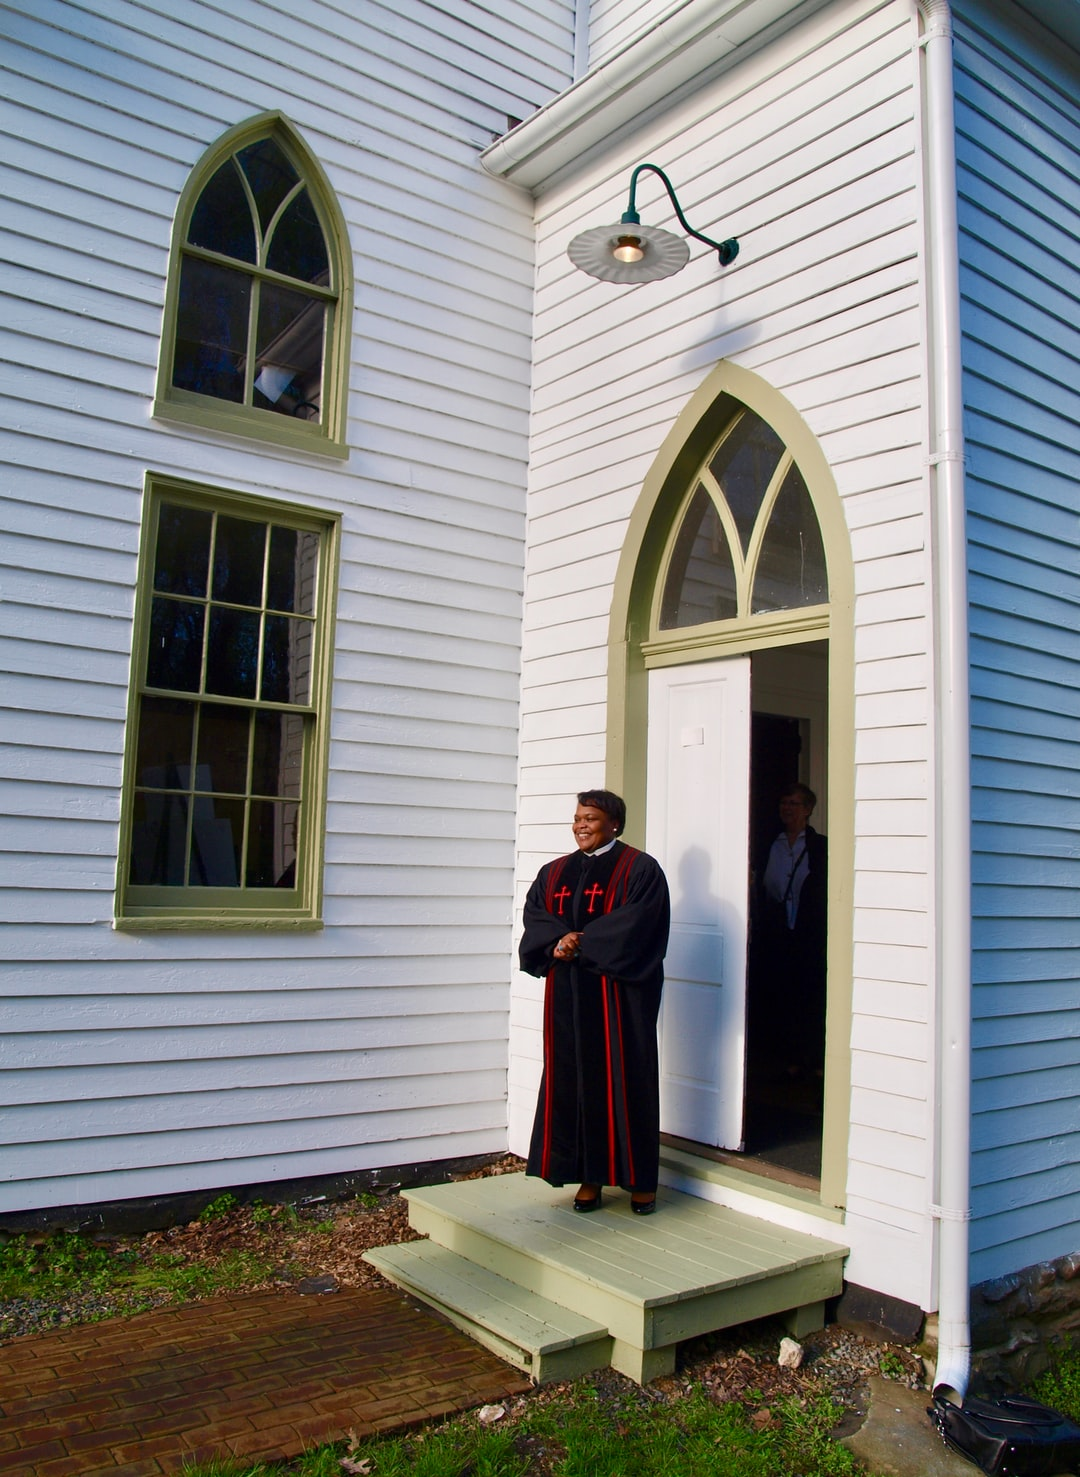 Pastor Michelle C. Thomas at Easter Sunrise Service, John Wesley Church, Waterford, Virginia 2019. Pastor Michelle C. Thomas is President of Loudoun County, Virginiua's NAACP.  She has gained recognition for her successful efforts to preserve African American burial sites in a rapidly developing county.  John Wesley Church, built by its African American congregation after the Civil War, is located in Waterford, a historic village on the National Registry of Historic Places.